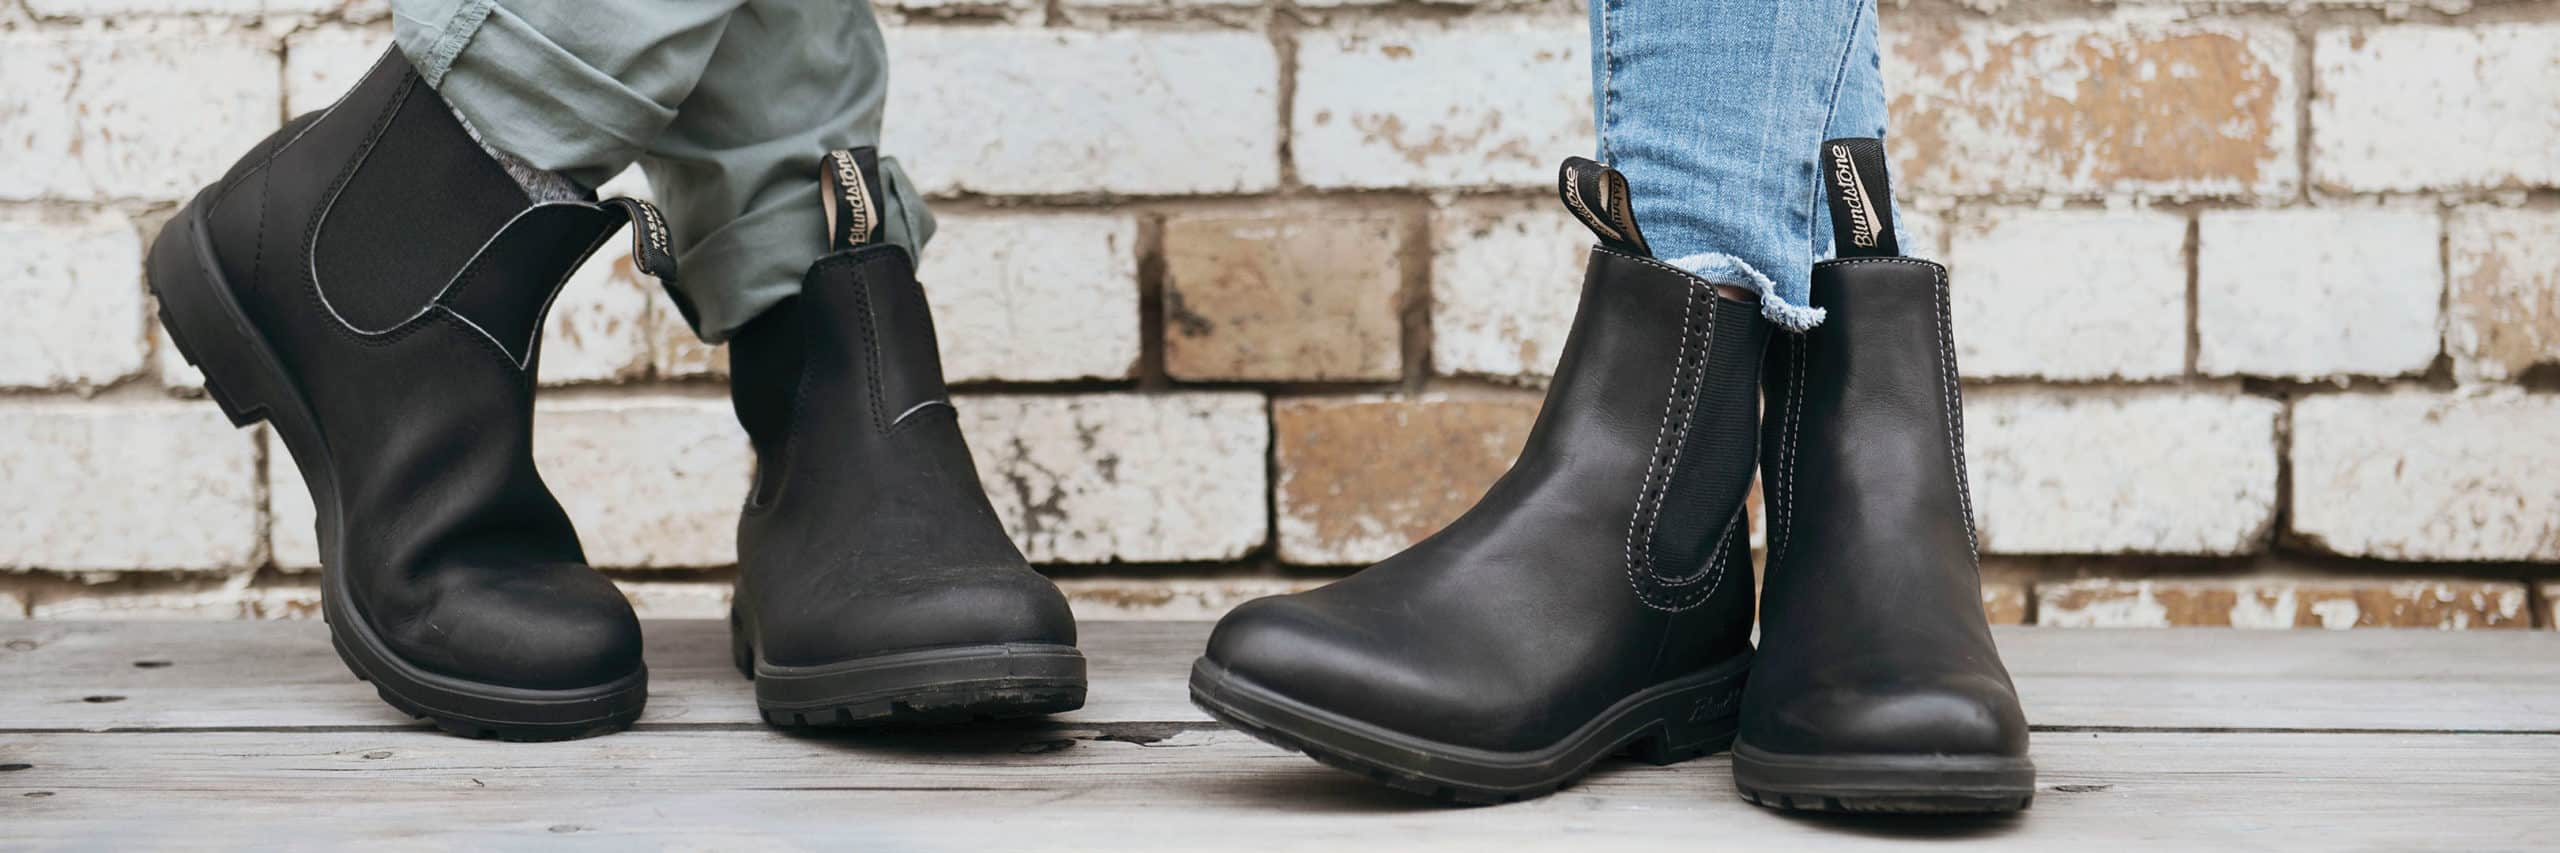 A Look at the 2019 Blundstone Boot Collection